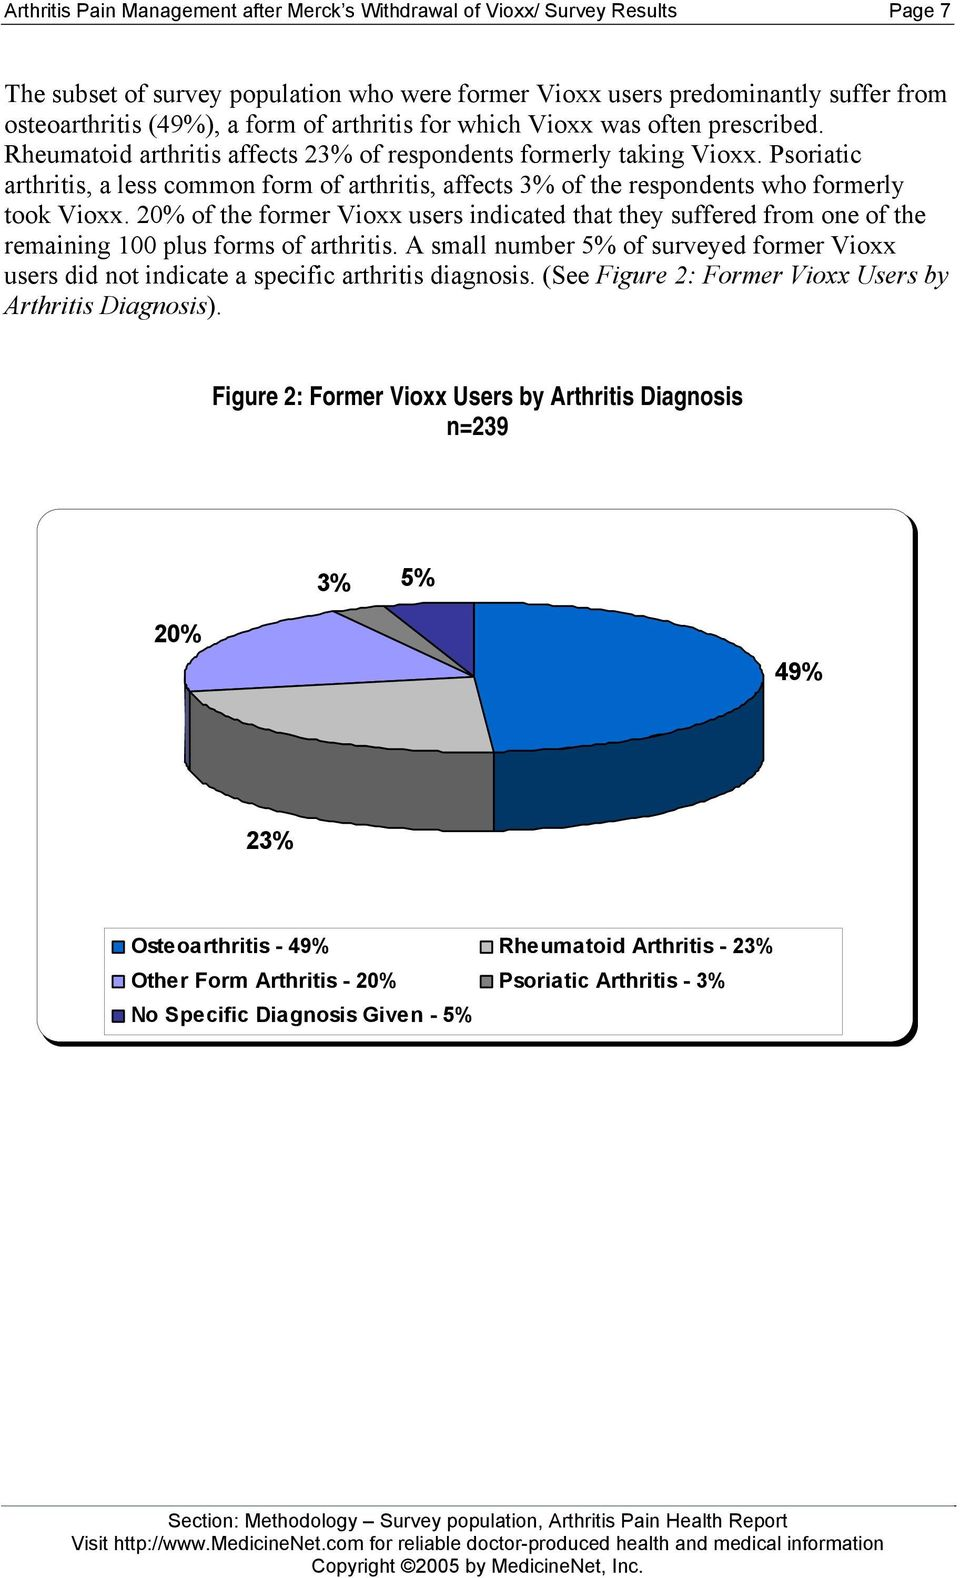 Psoriatic arthritis, a less common form of arthritis, affects 3% of the respondents who formerly took Vioxx.